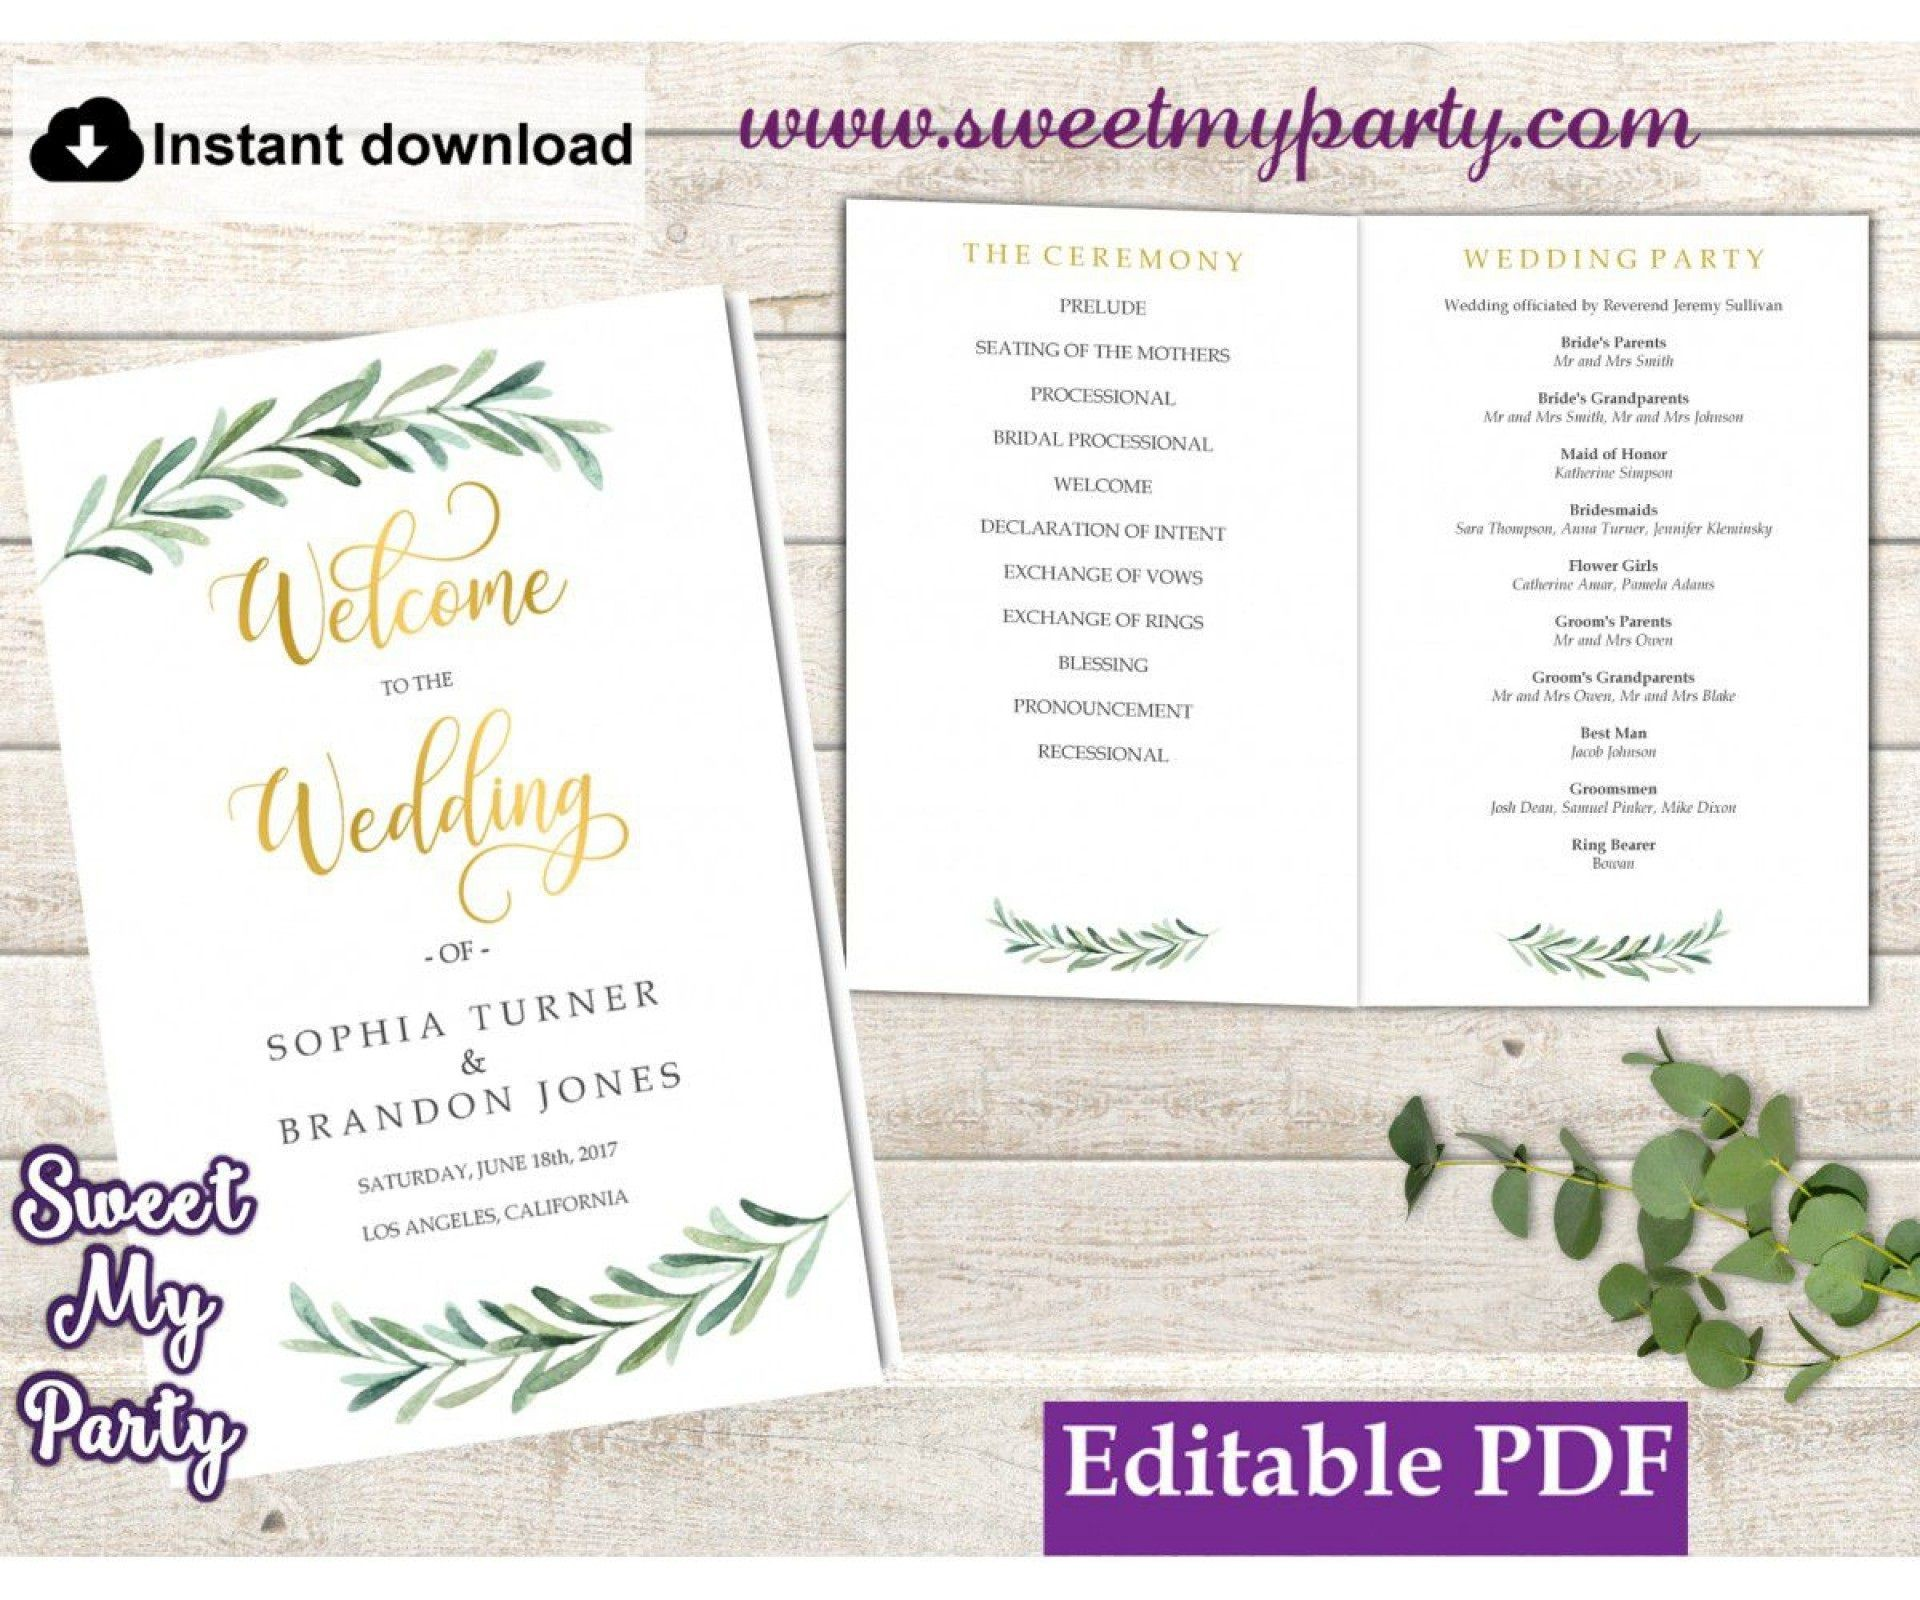 008 Excellent Wedding Order Of Service Template Word Picture  Free Microsoft1920